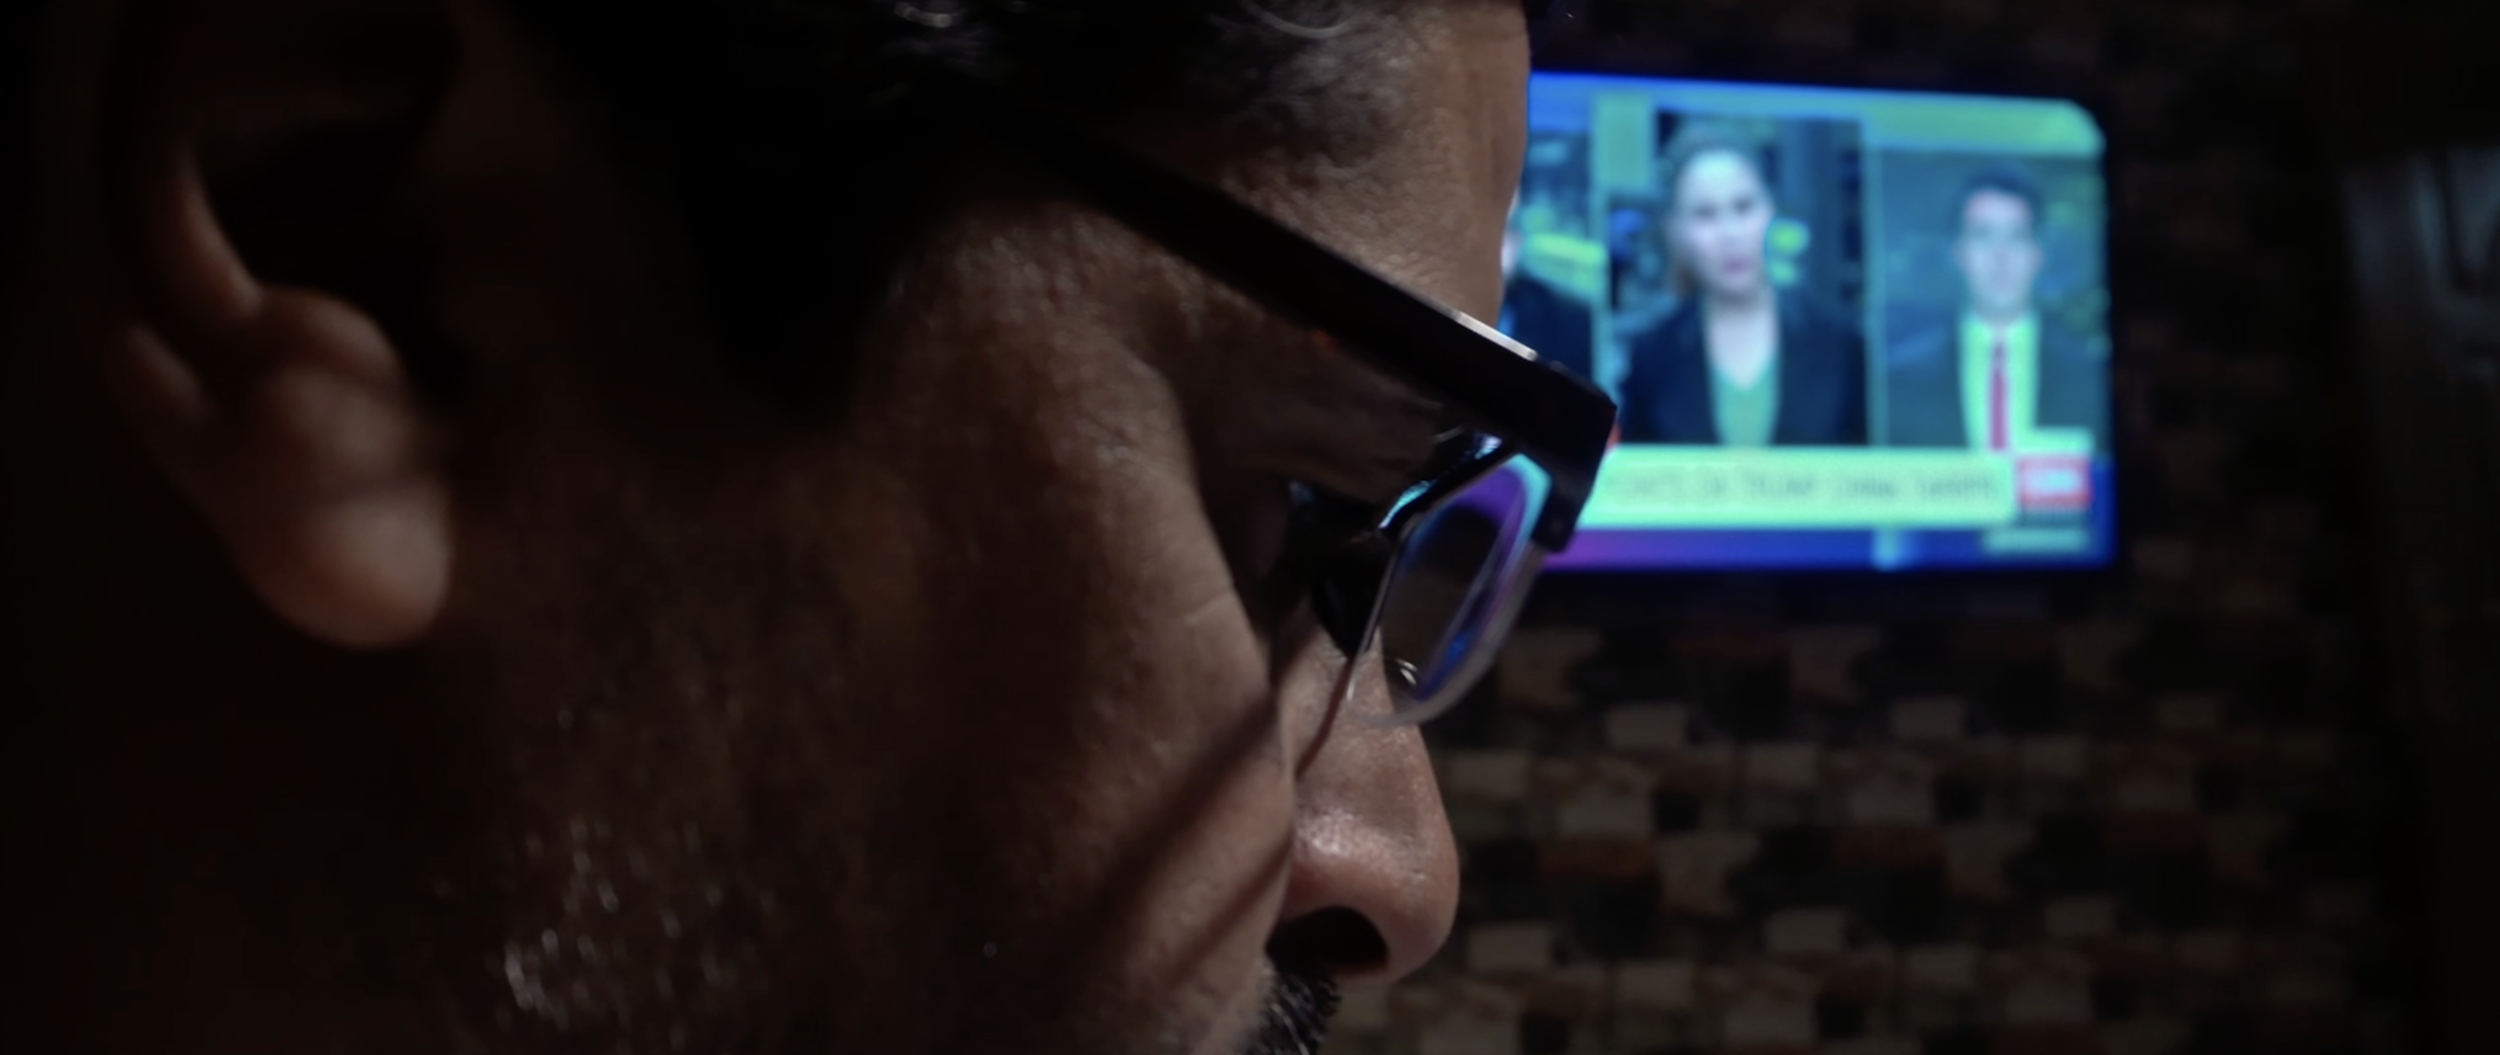 Journalist Ali Maula works on his laptop while news display on TV screen.png